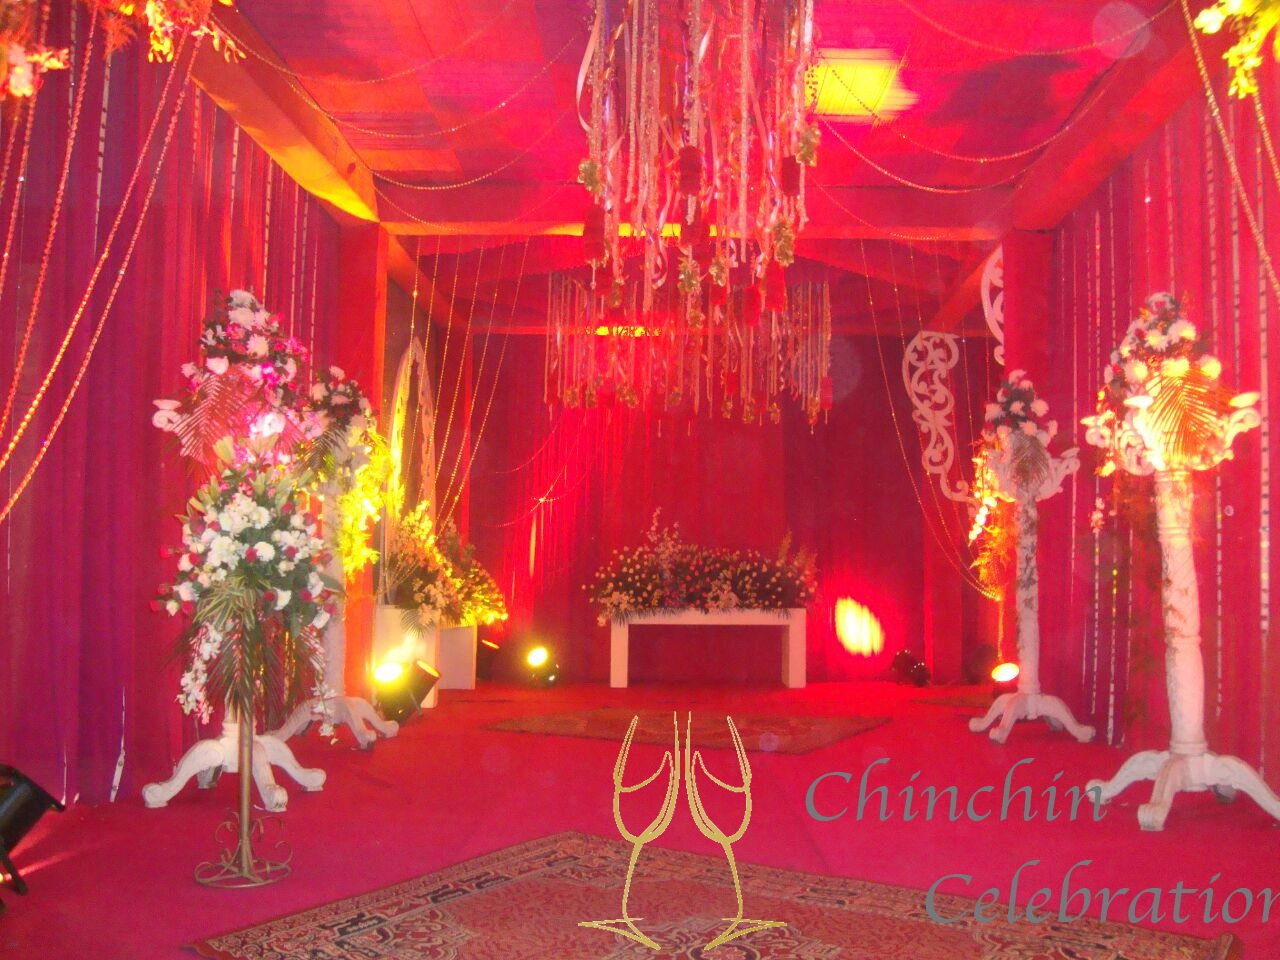 wedding planner delhi, event management company gurgaon, theme party planner delhi /gurgaon, wedding gate entry styles, wedding decoraters